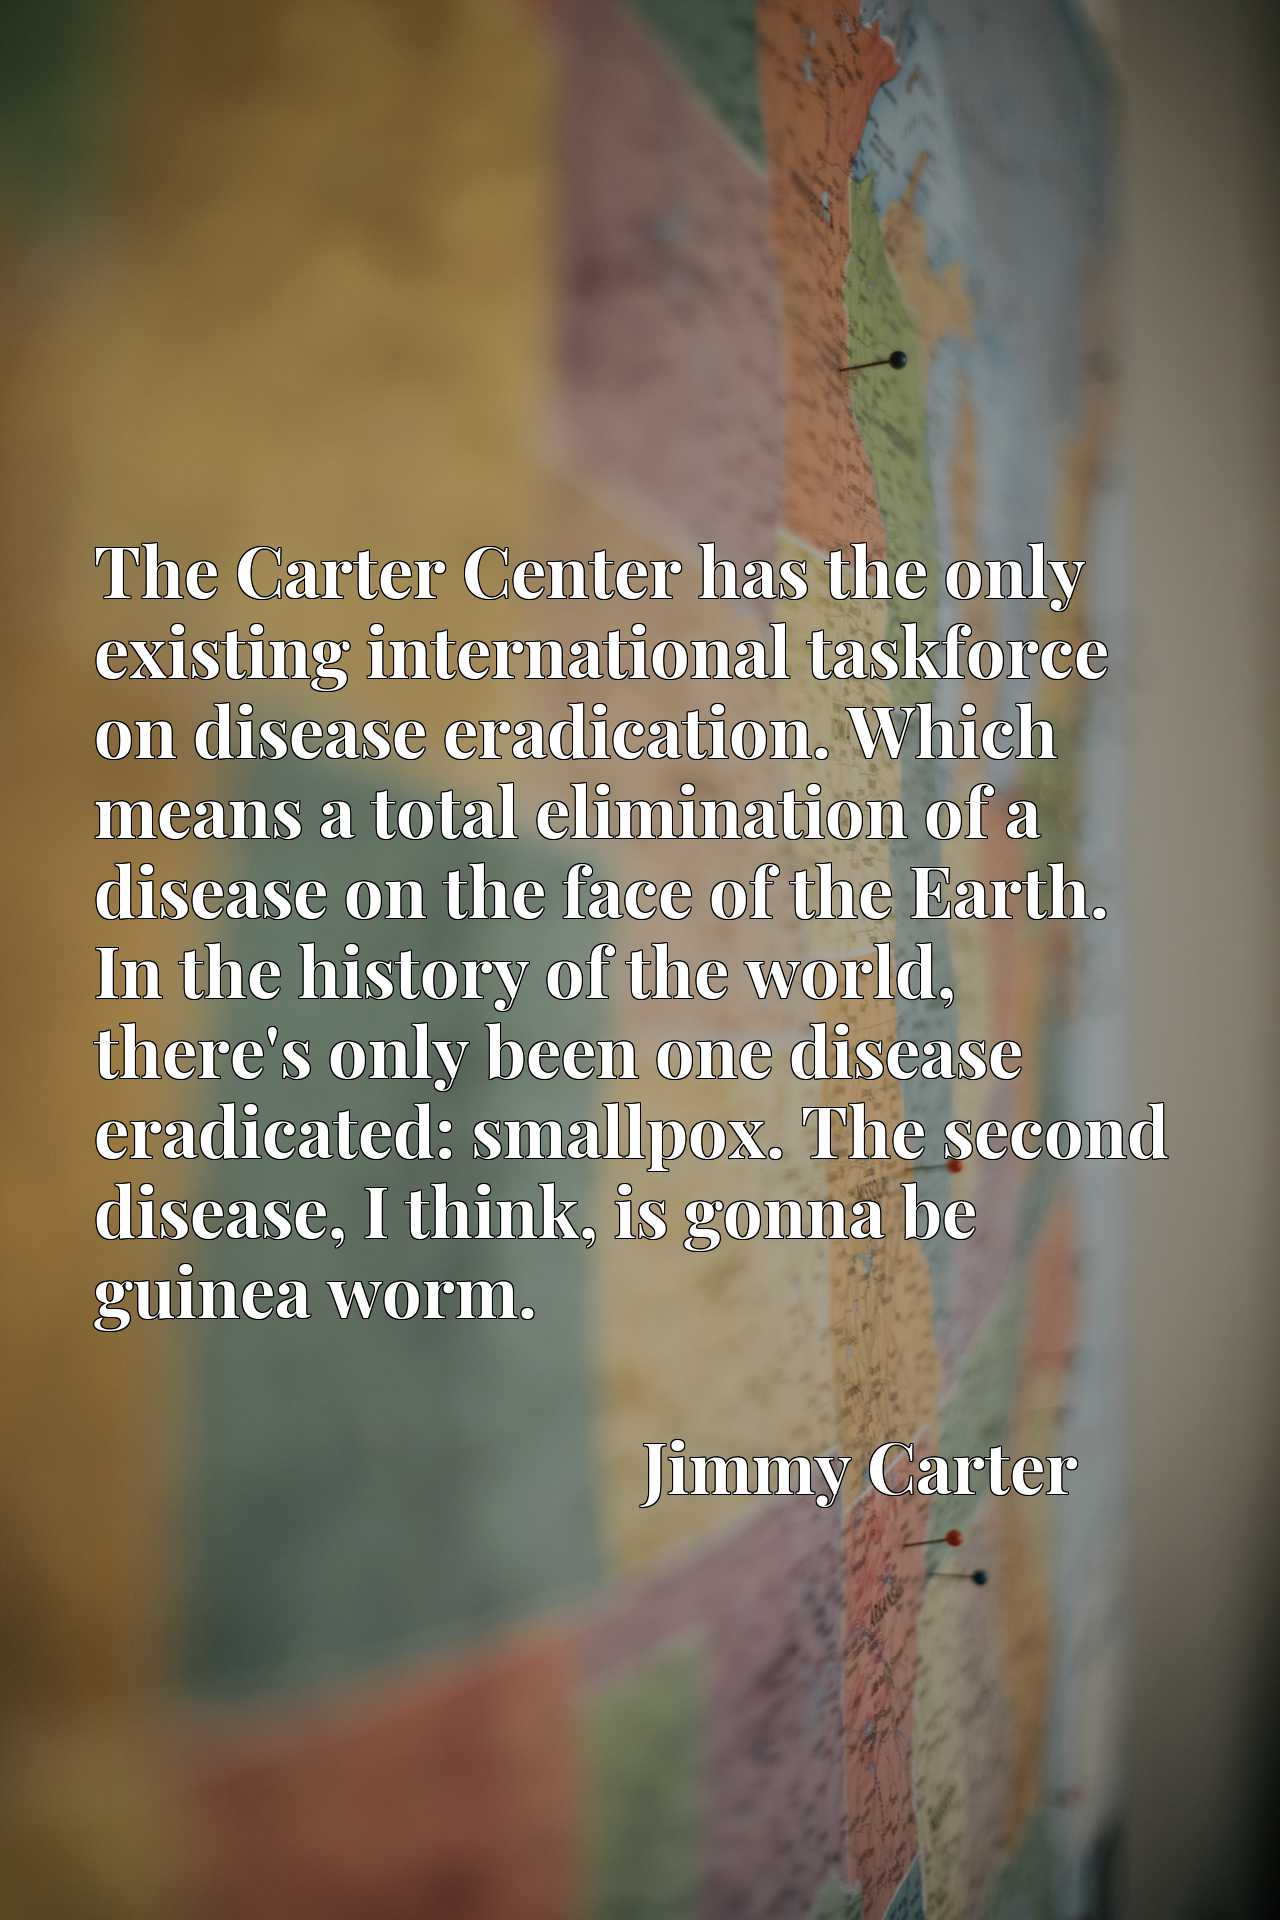 The Carter Center has the only existing international taskforce on disease eradication. Which means a total elimination of a disease on the face of the Earth. In the history of the world, there's only been one disease eradicated: smallpox. The second disease, I think, is gonna be guinea worm.